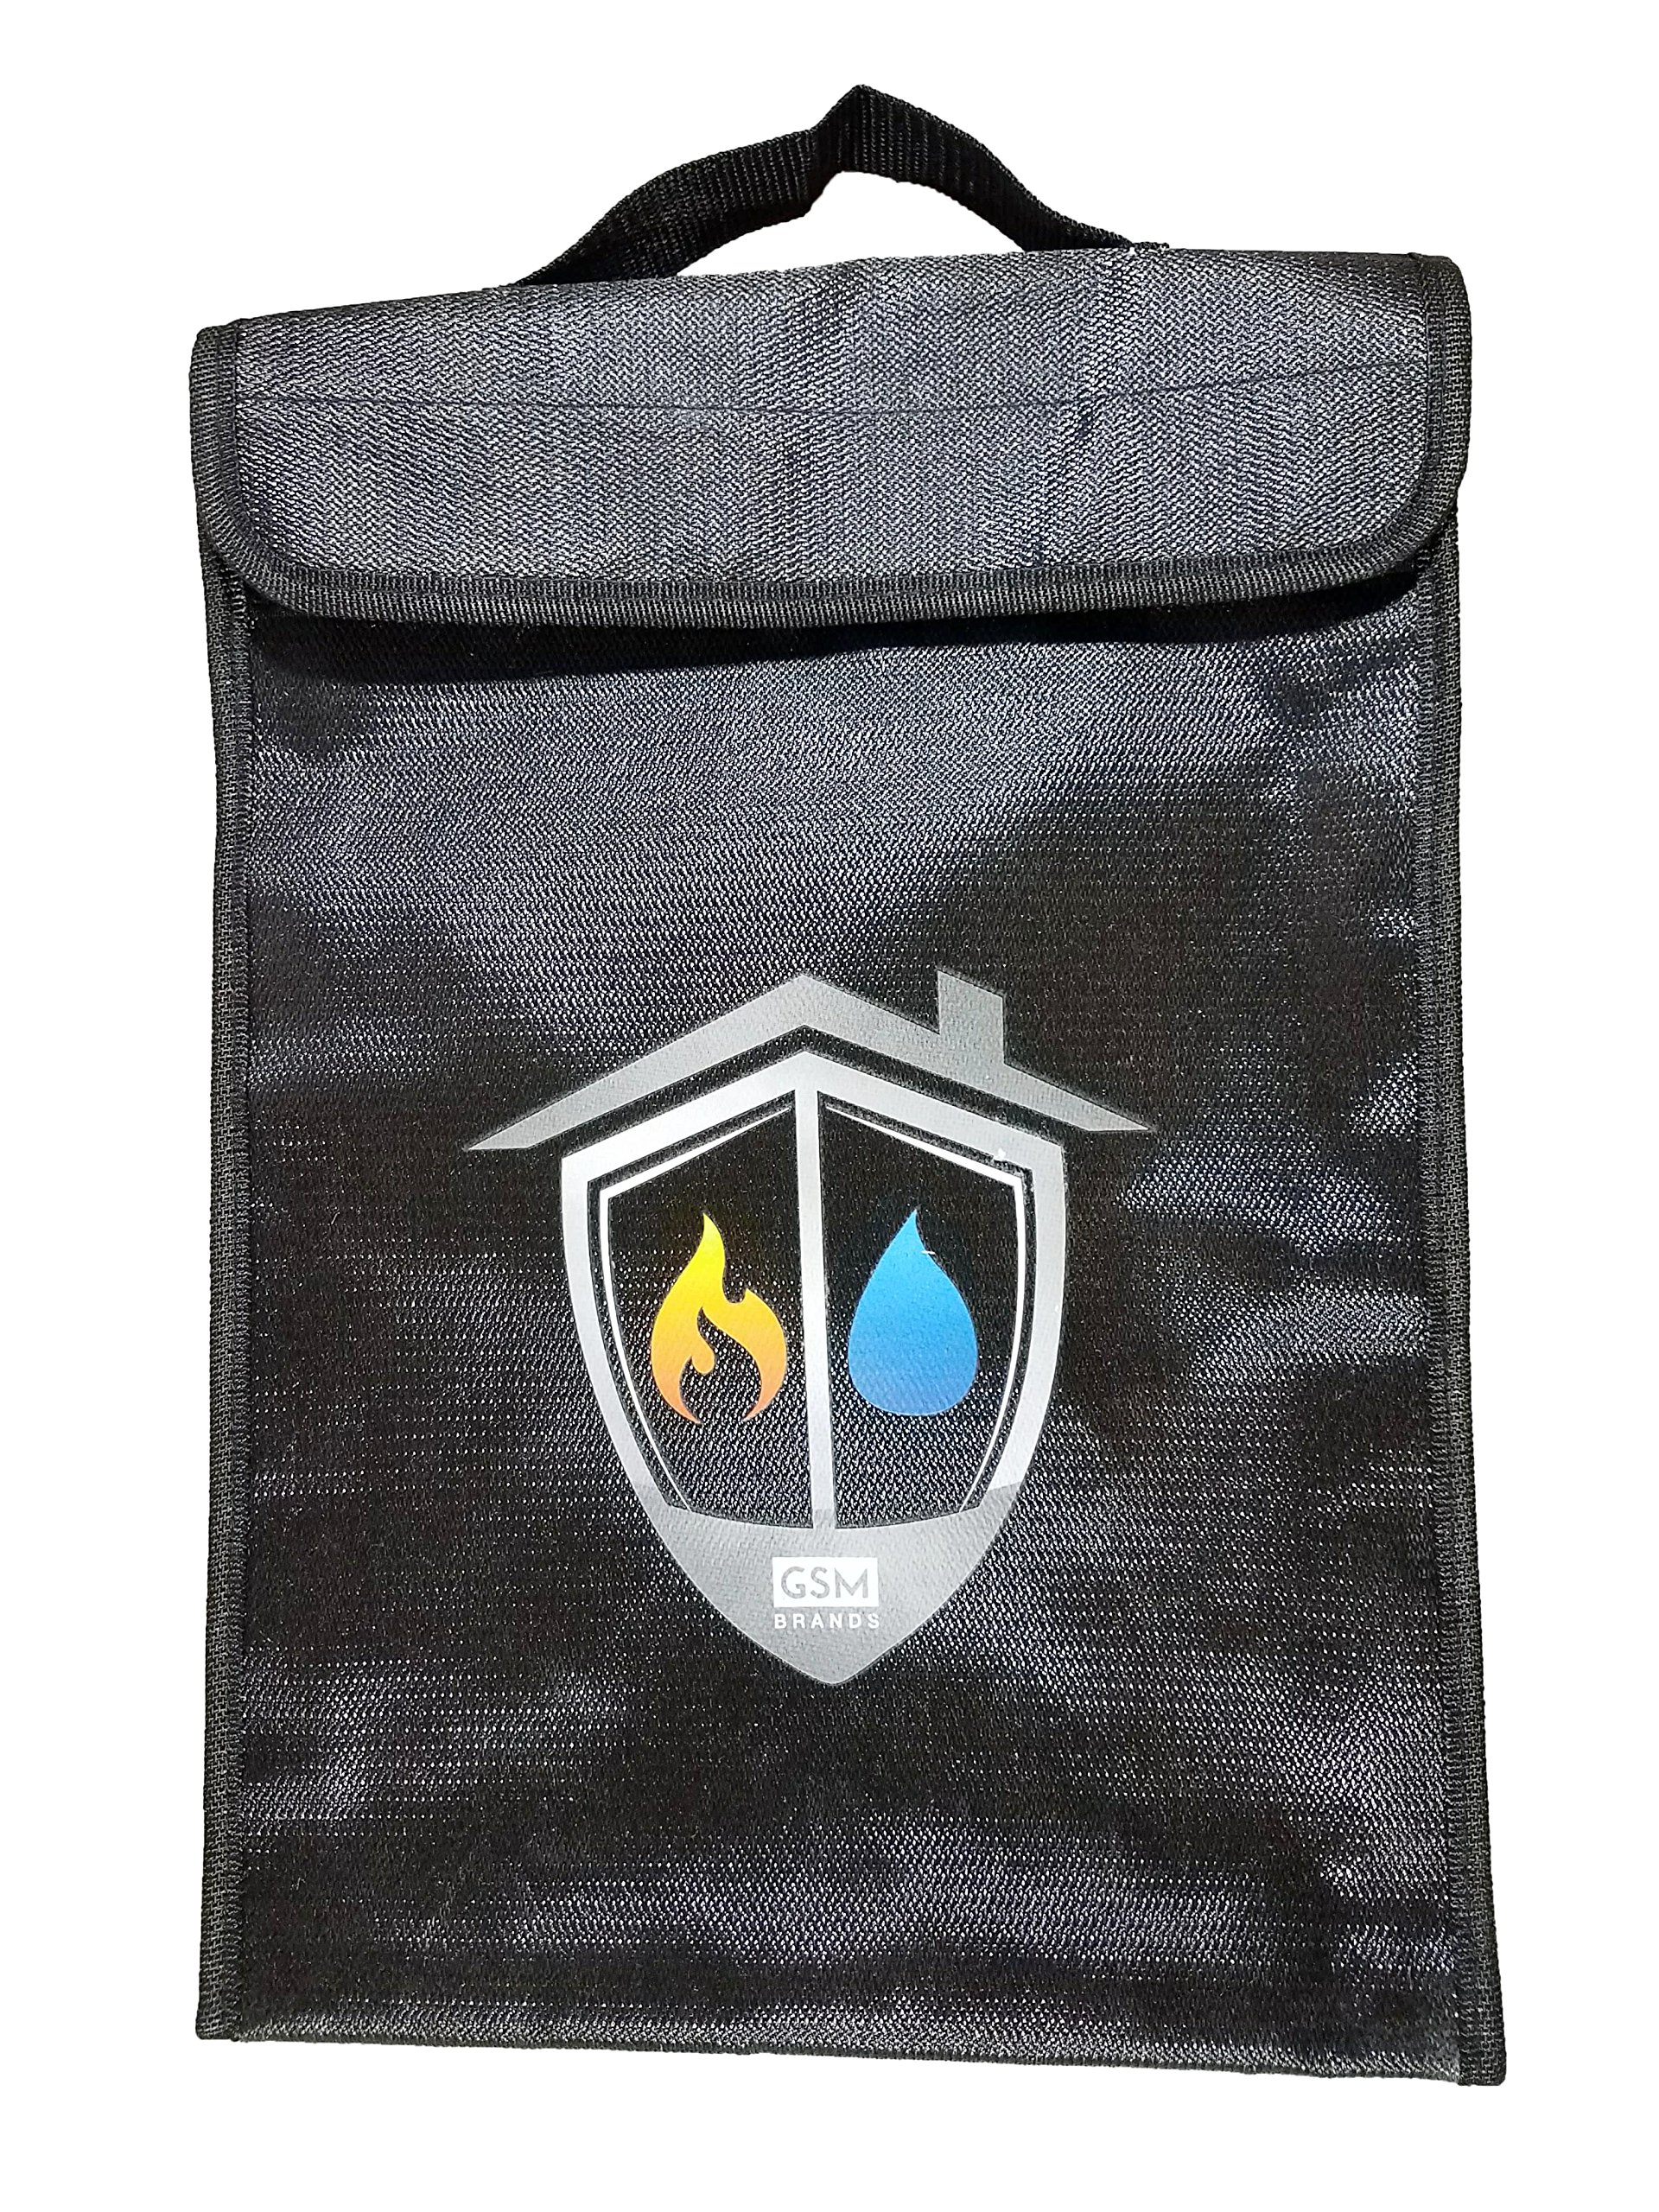 Fireproof Bag - Fire and Water Resistant Safe Pouch for Money and Document Safekeeping (15'' x 11'' x 2'')